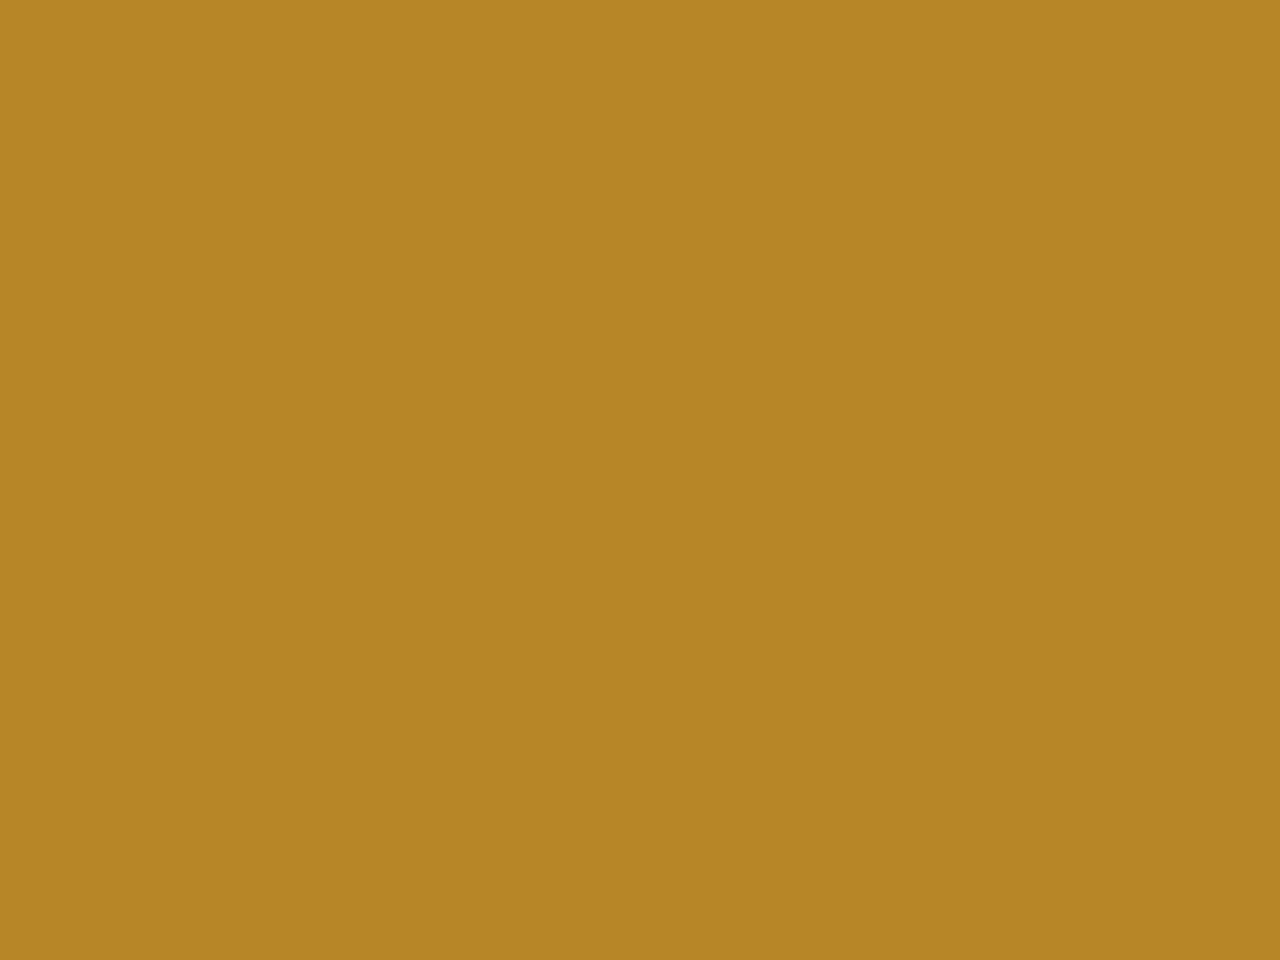 1280x960 University Of California Gold Solid Color Background